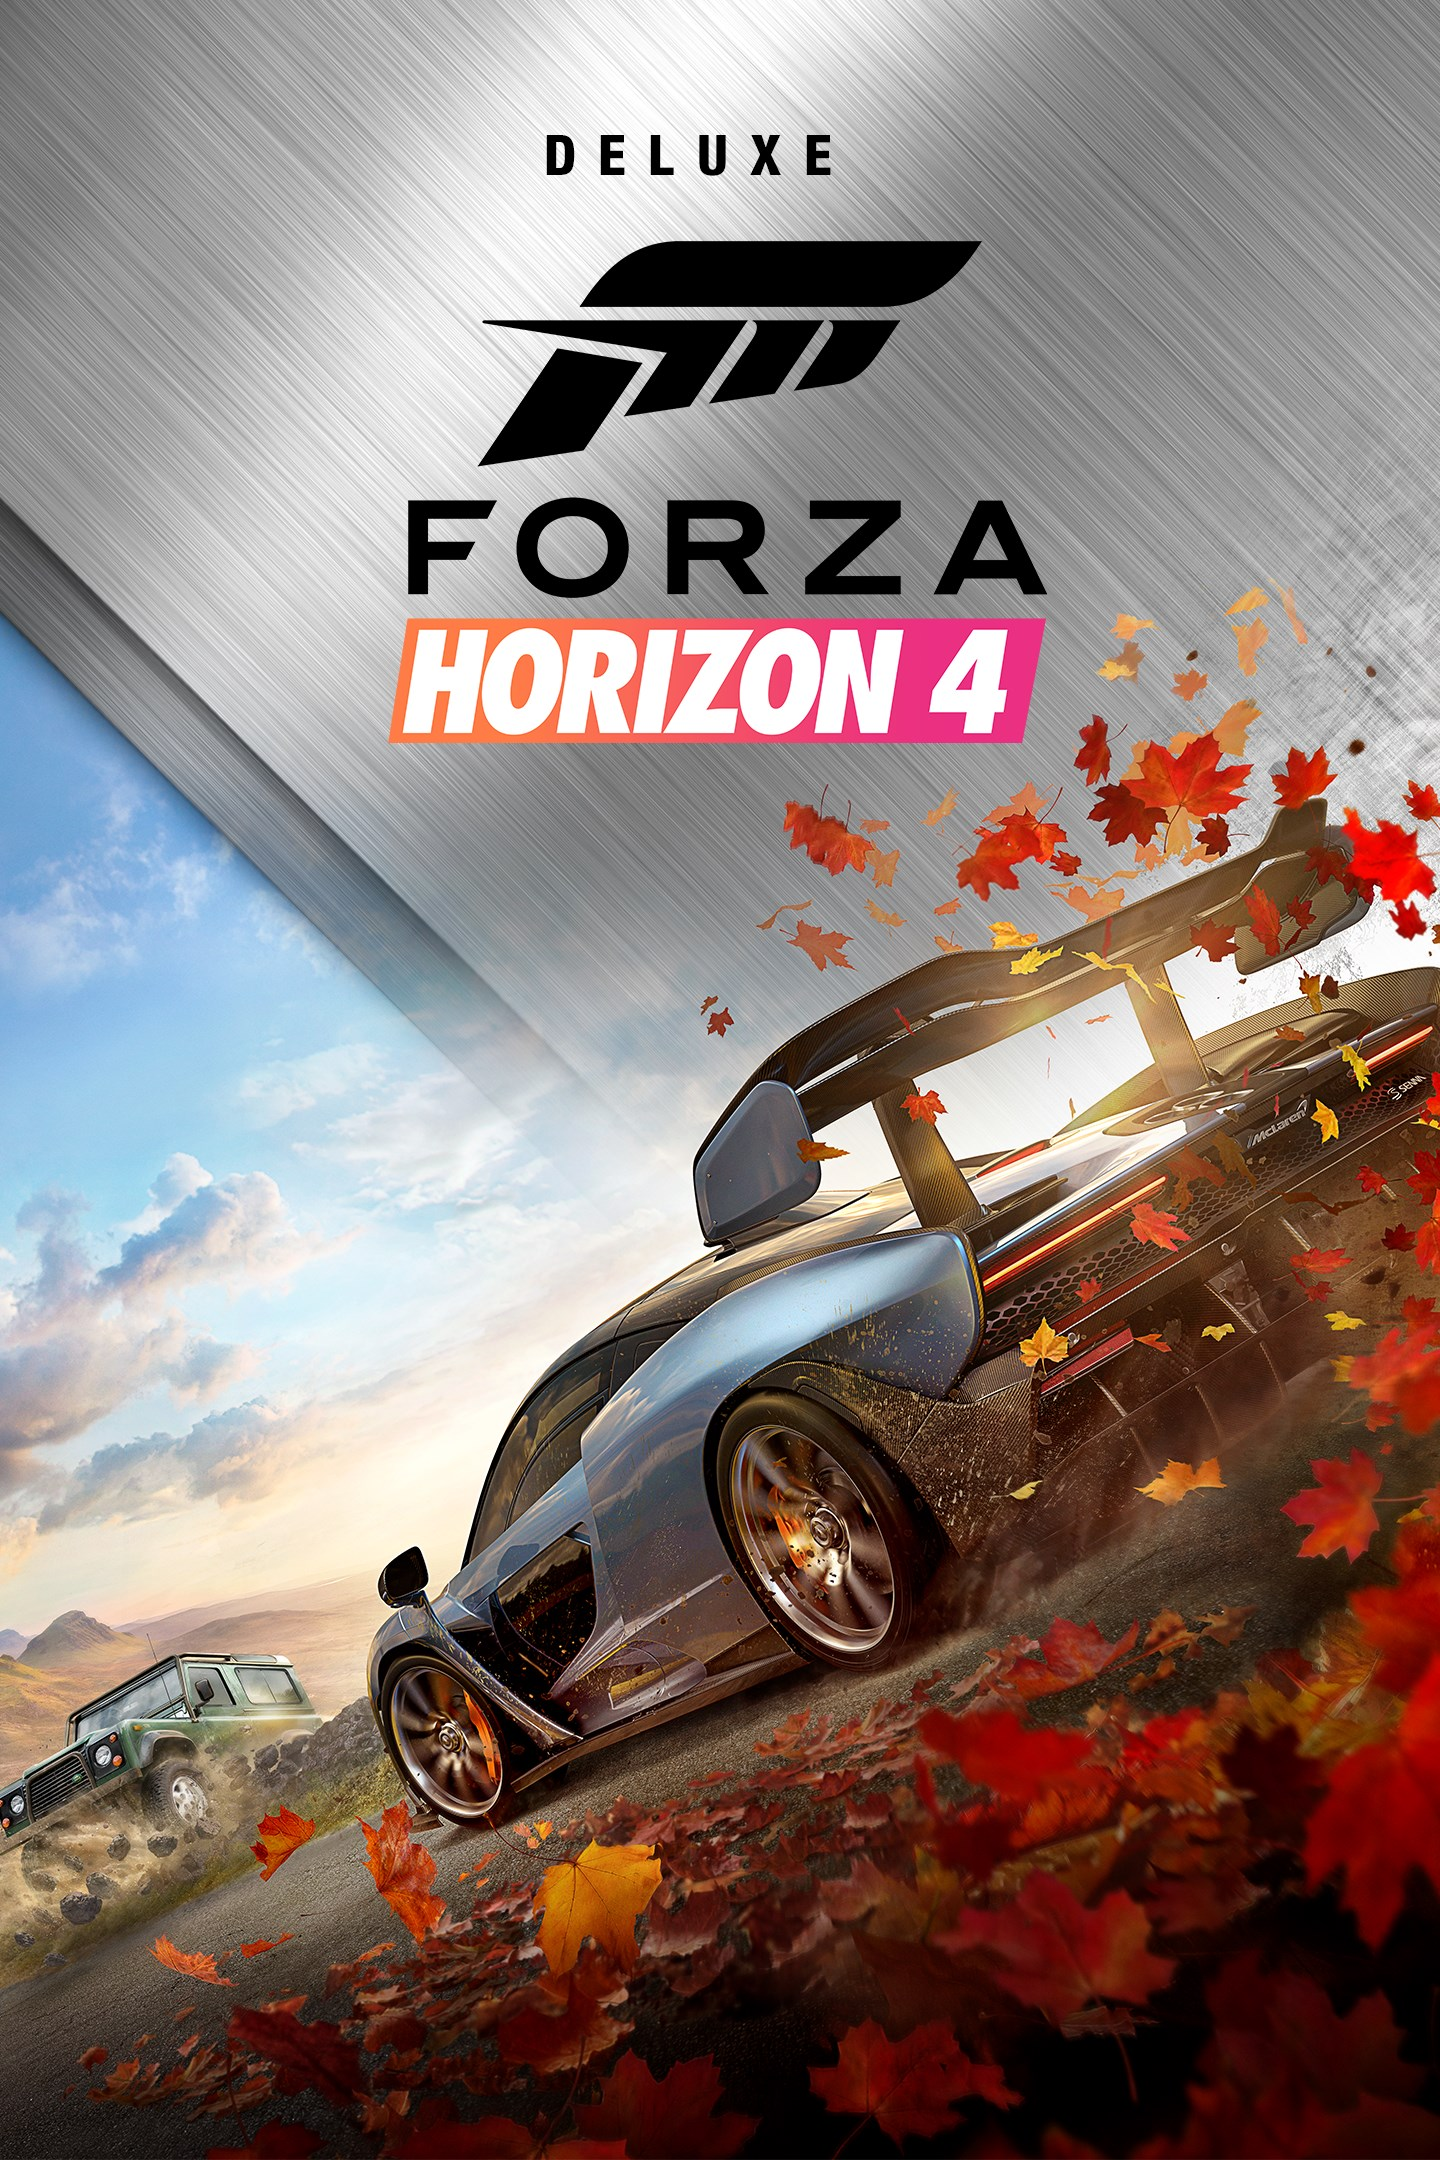 Forza Horizon 4 For Xbox One And Windows 10 Xbox